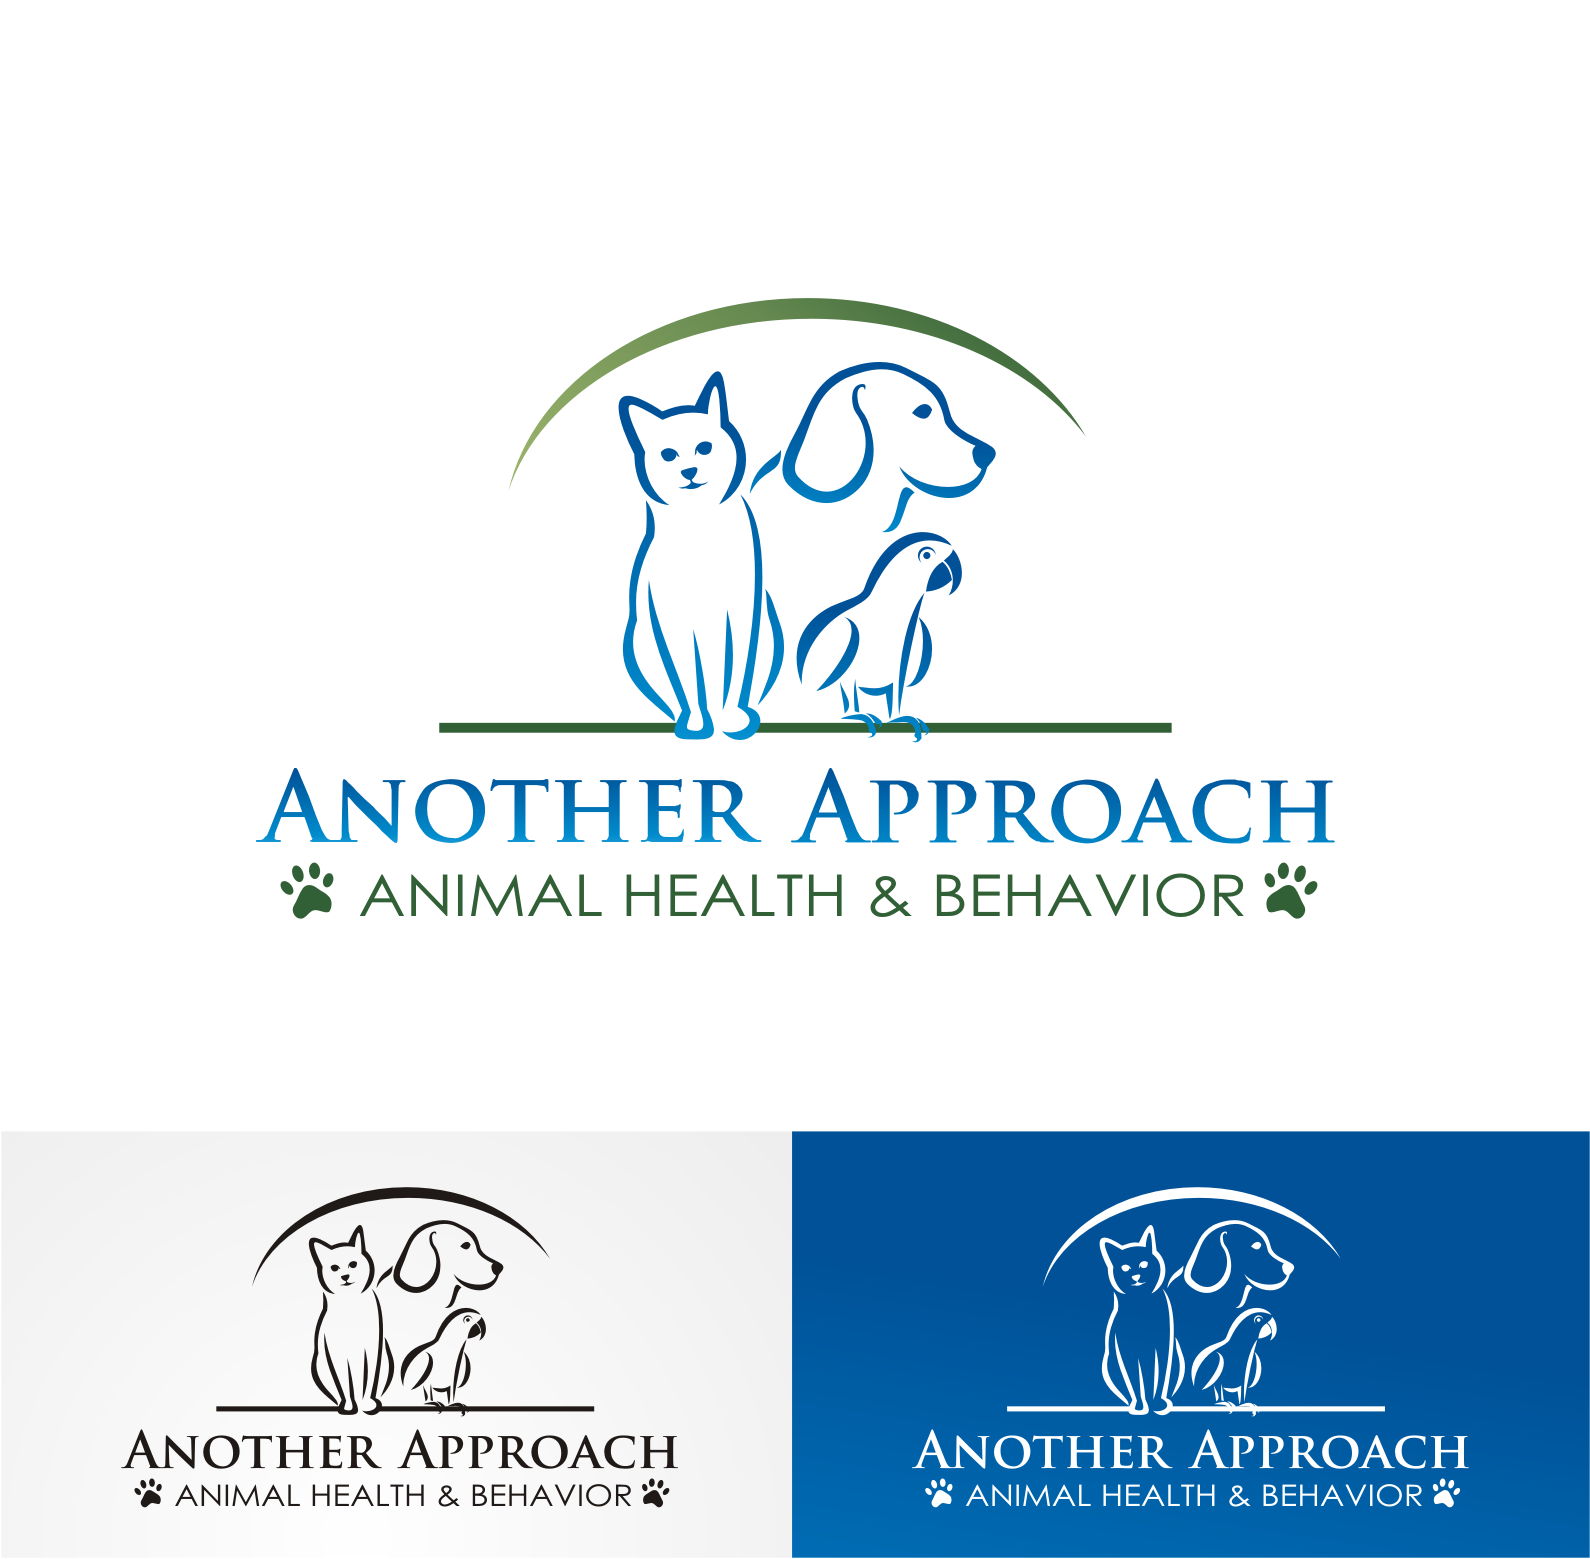 ANIMAL LOVERS: Create the next logo for Another Approach Animal Health & Behavior